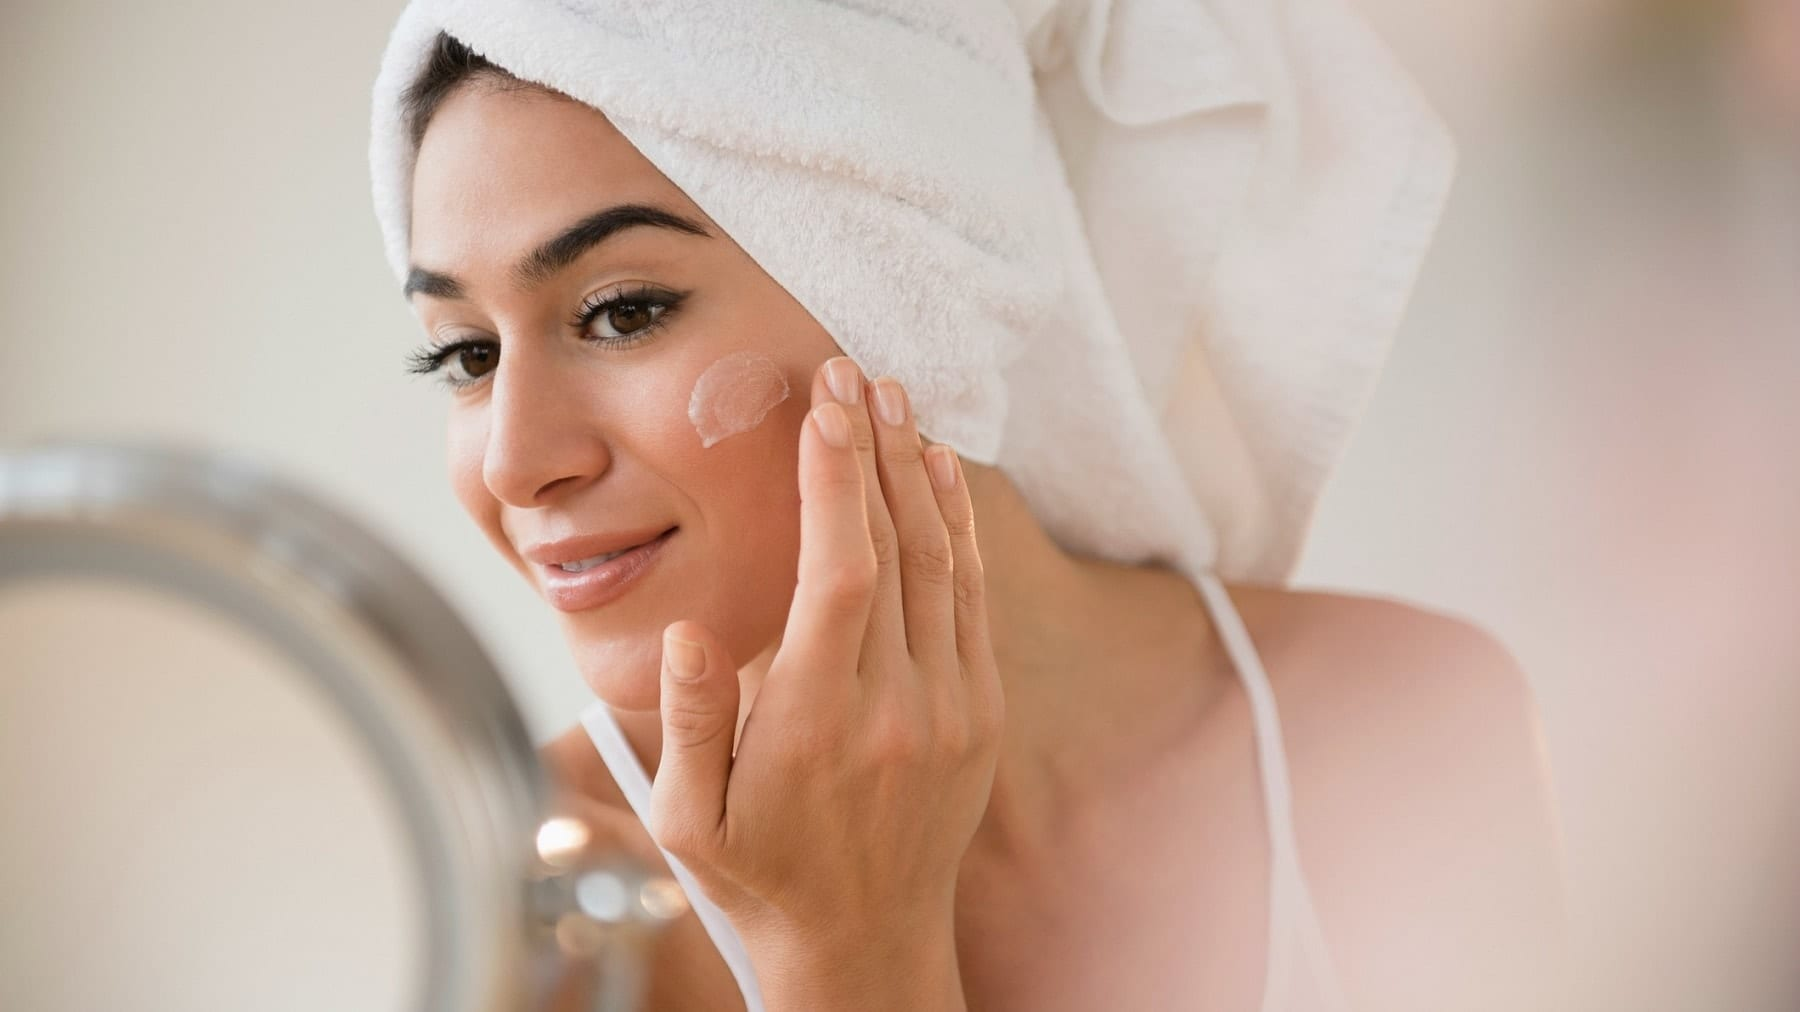 Facial Skin Care: 8 Major mistakes